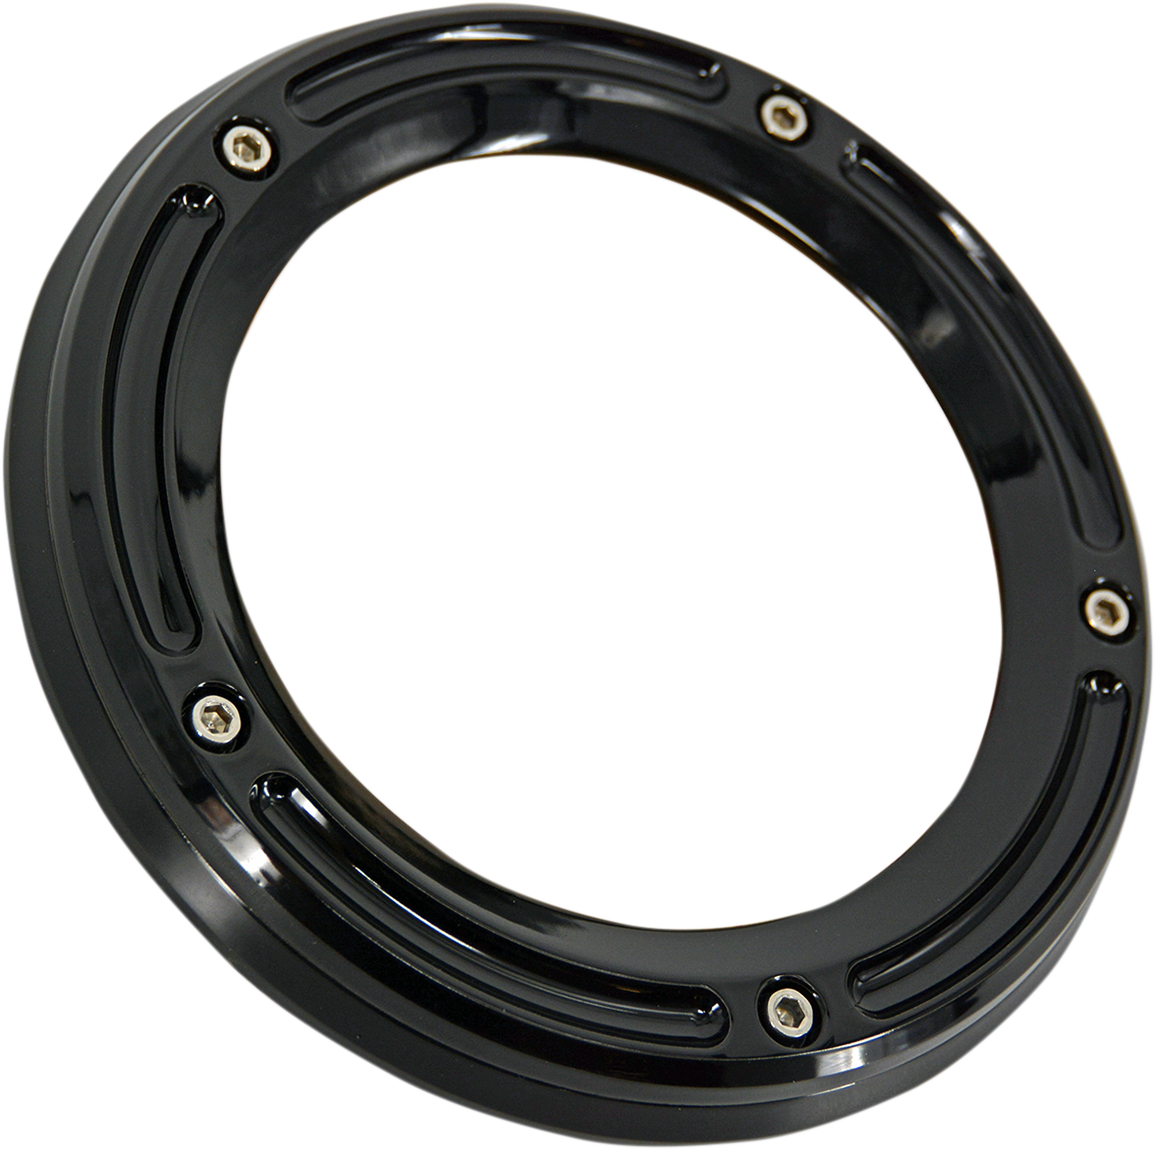 Trask Black Assault See Through 5 Hole Derby Cover 16-20 Harley Touring FLHX FLHR